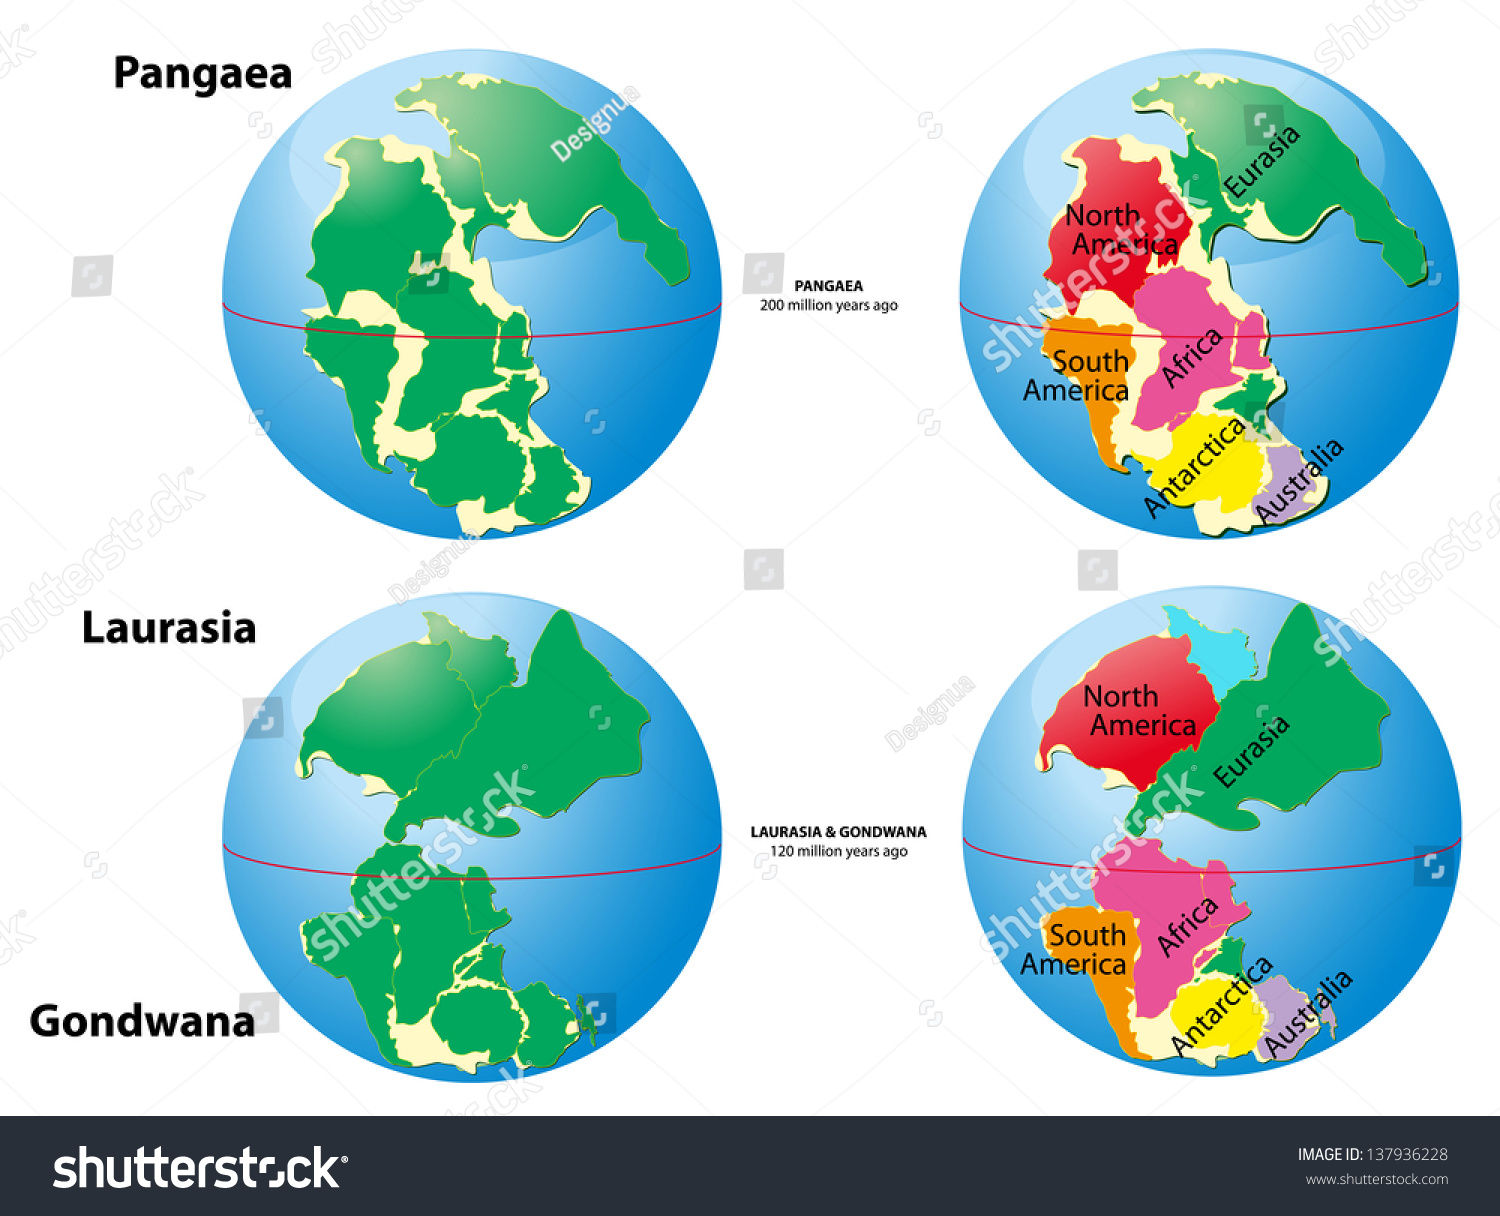 pangaea a super continent Pangaea or pangea ( / p æ n ˈ dʒ iː ə / of the same age and structure are found on many separate continents that would have been together in the continent of.